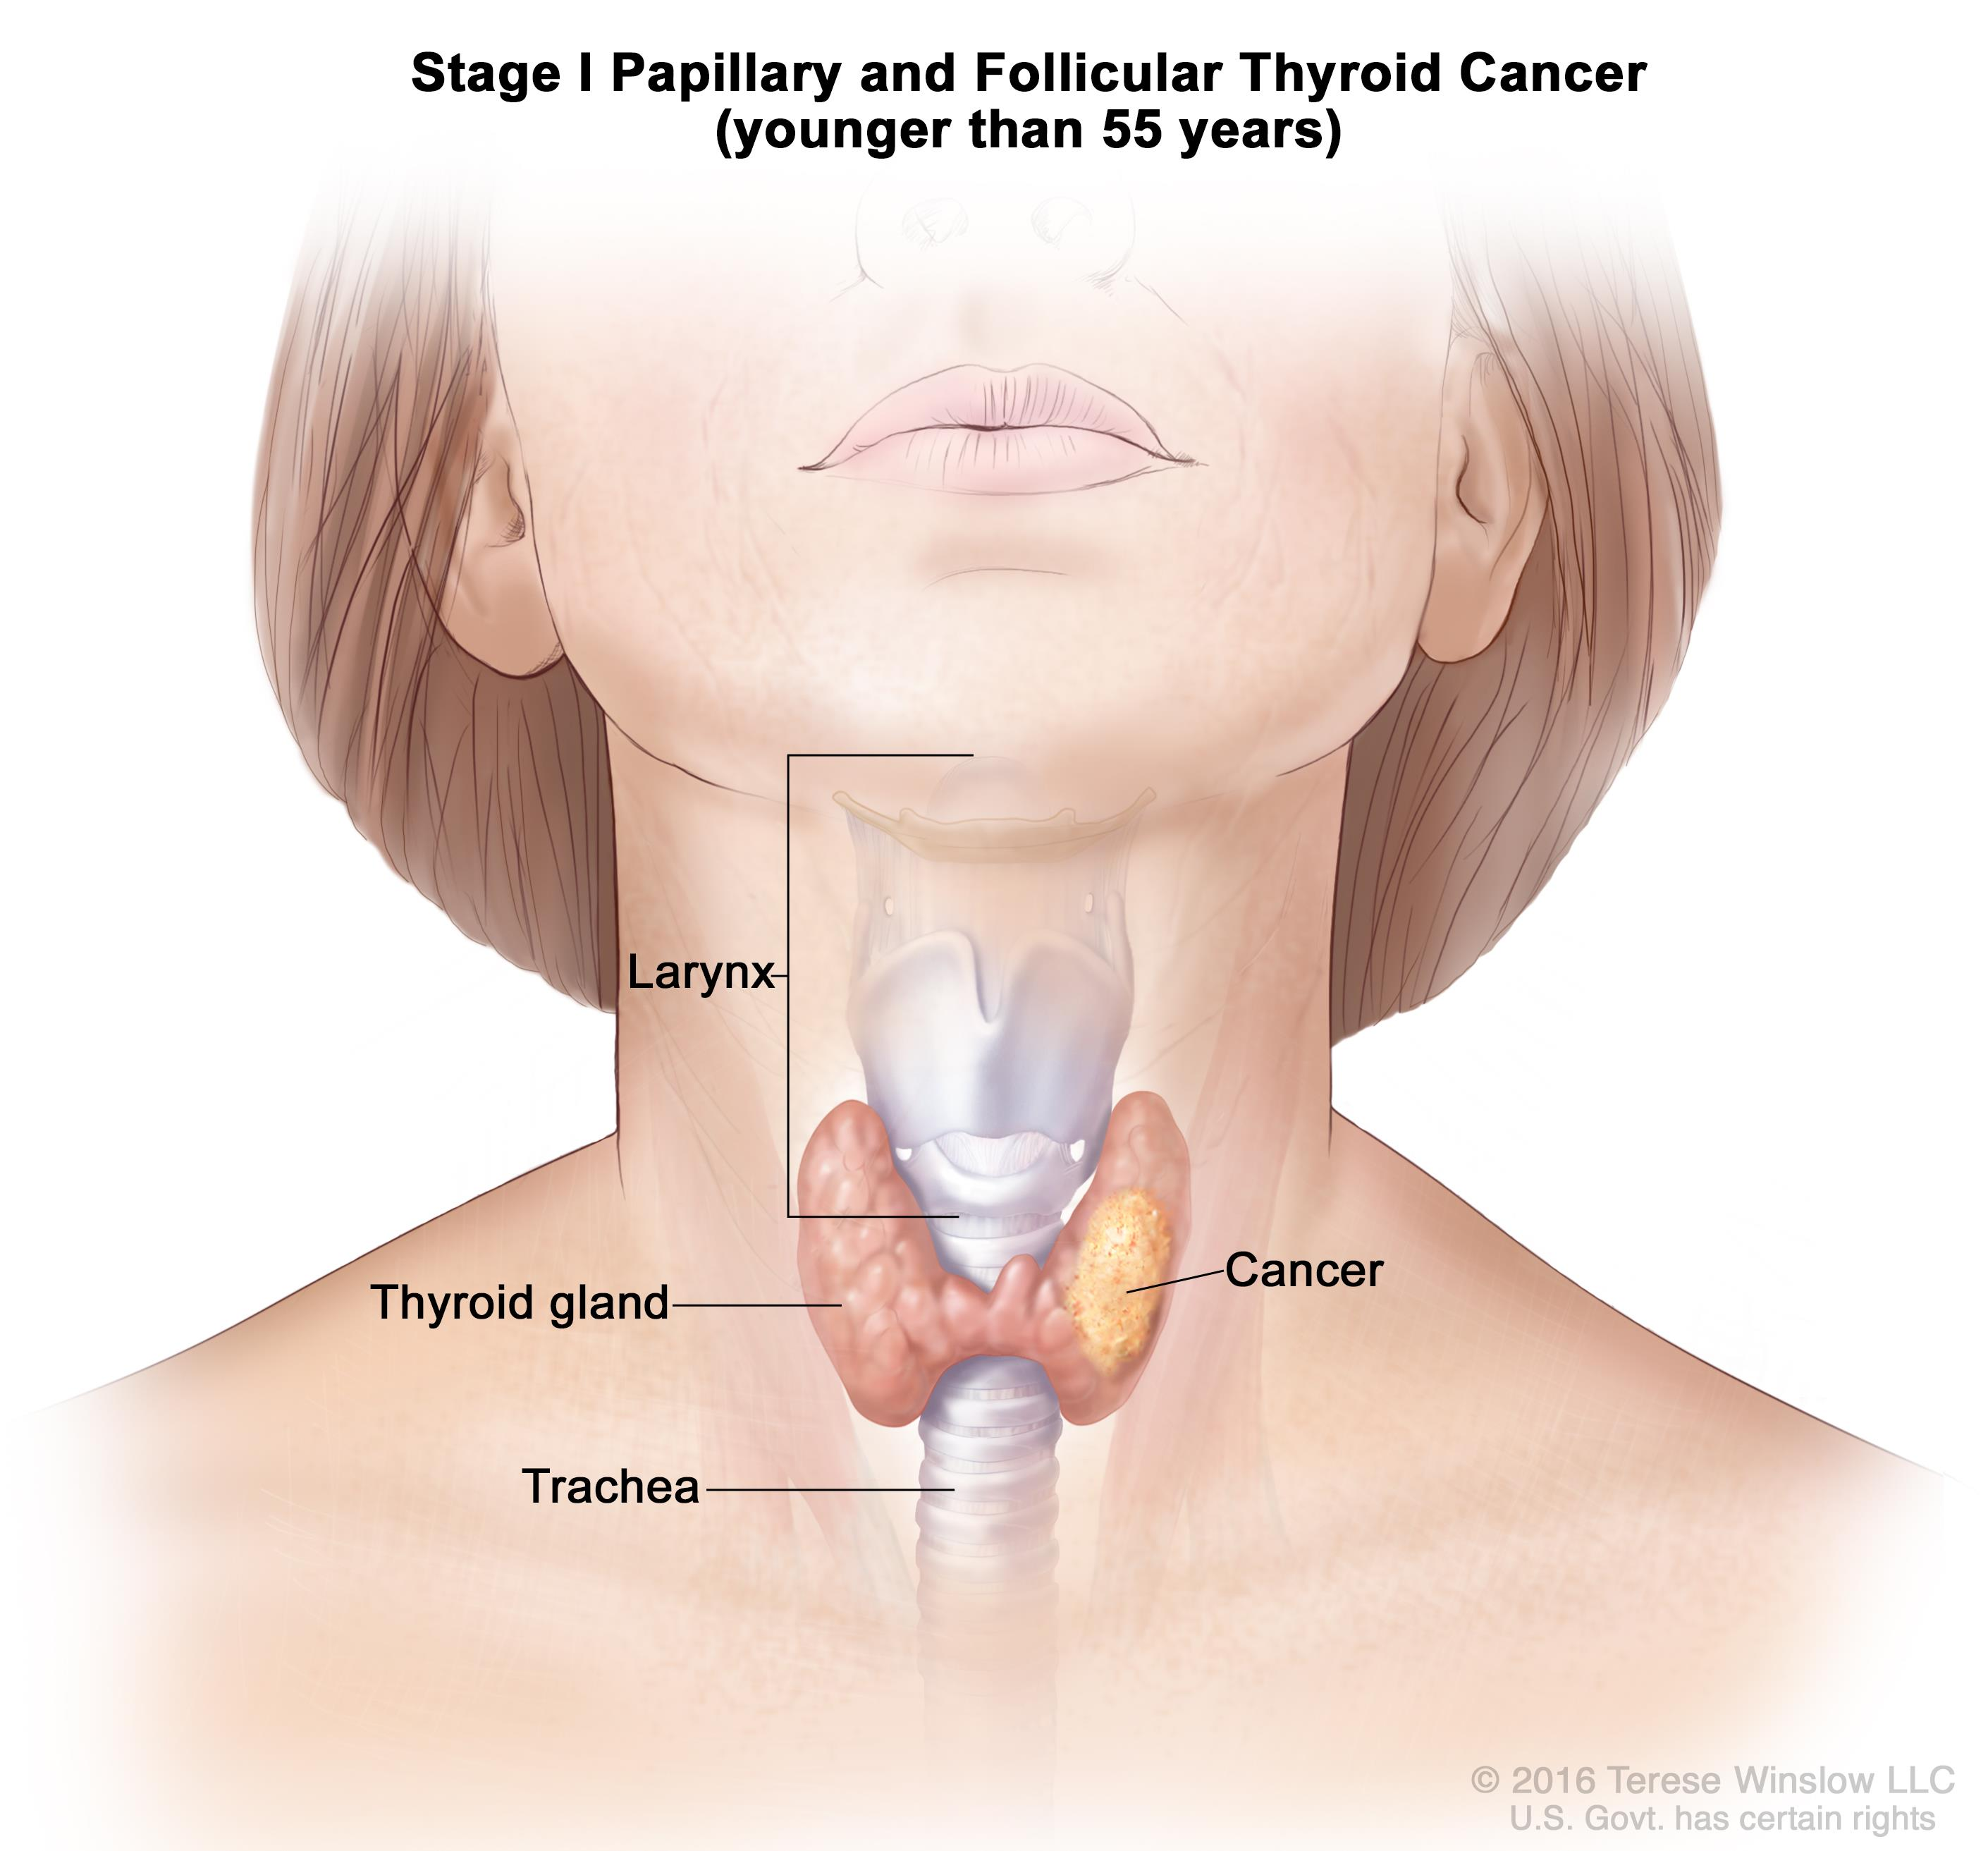 papillary thyroid cancer stage 1 treatment